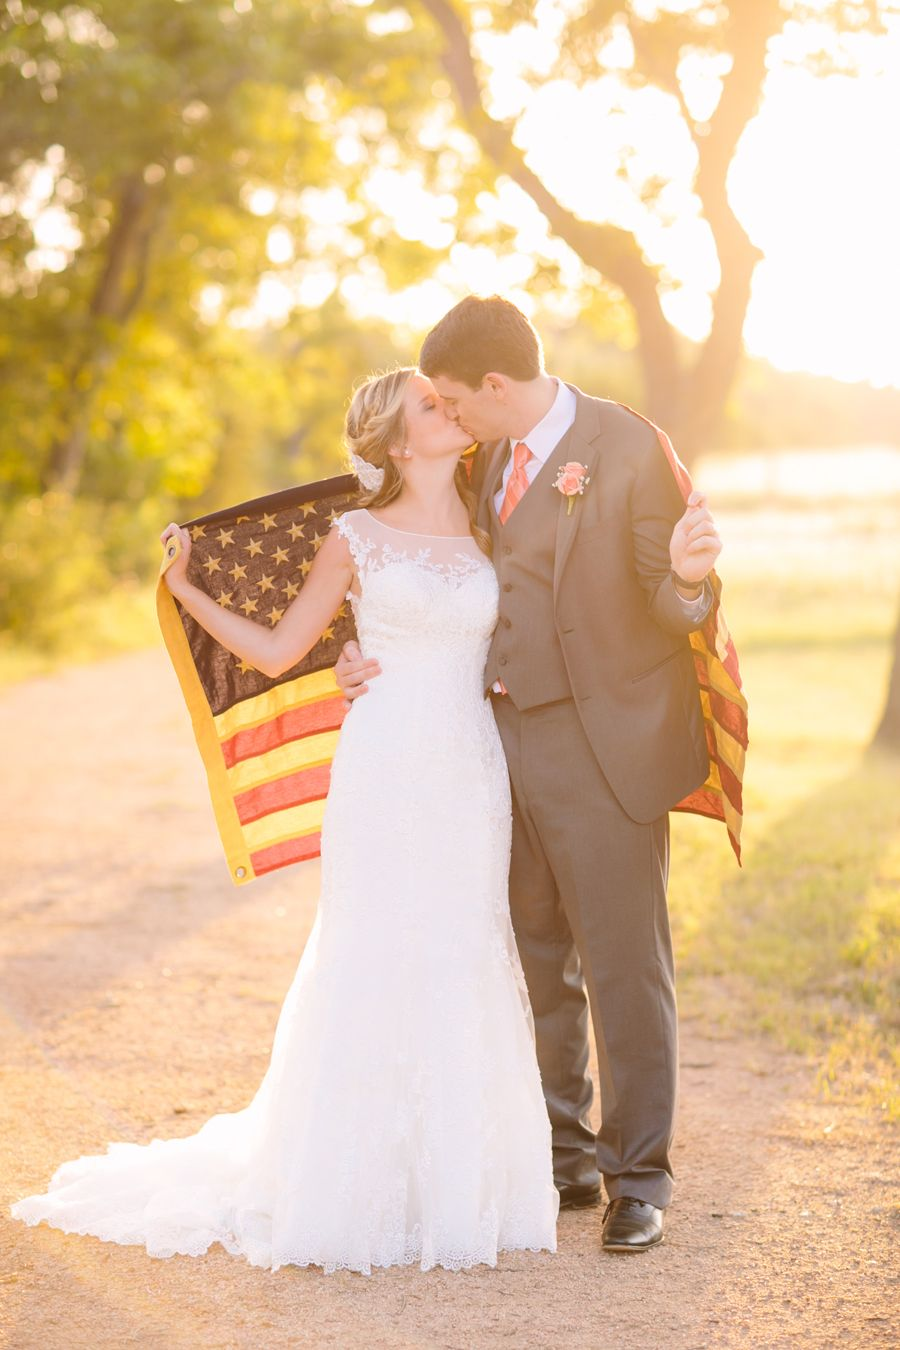 A 4th of July wedding with a subtle holiday theme.